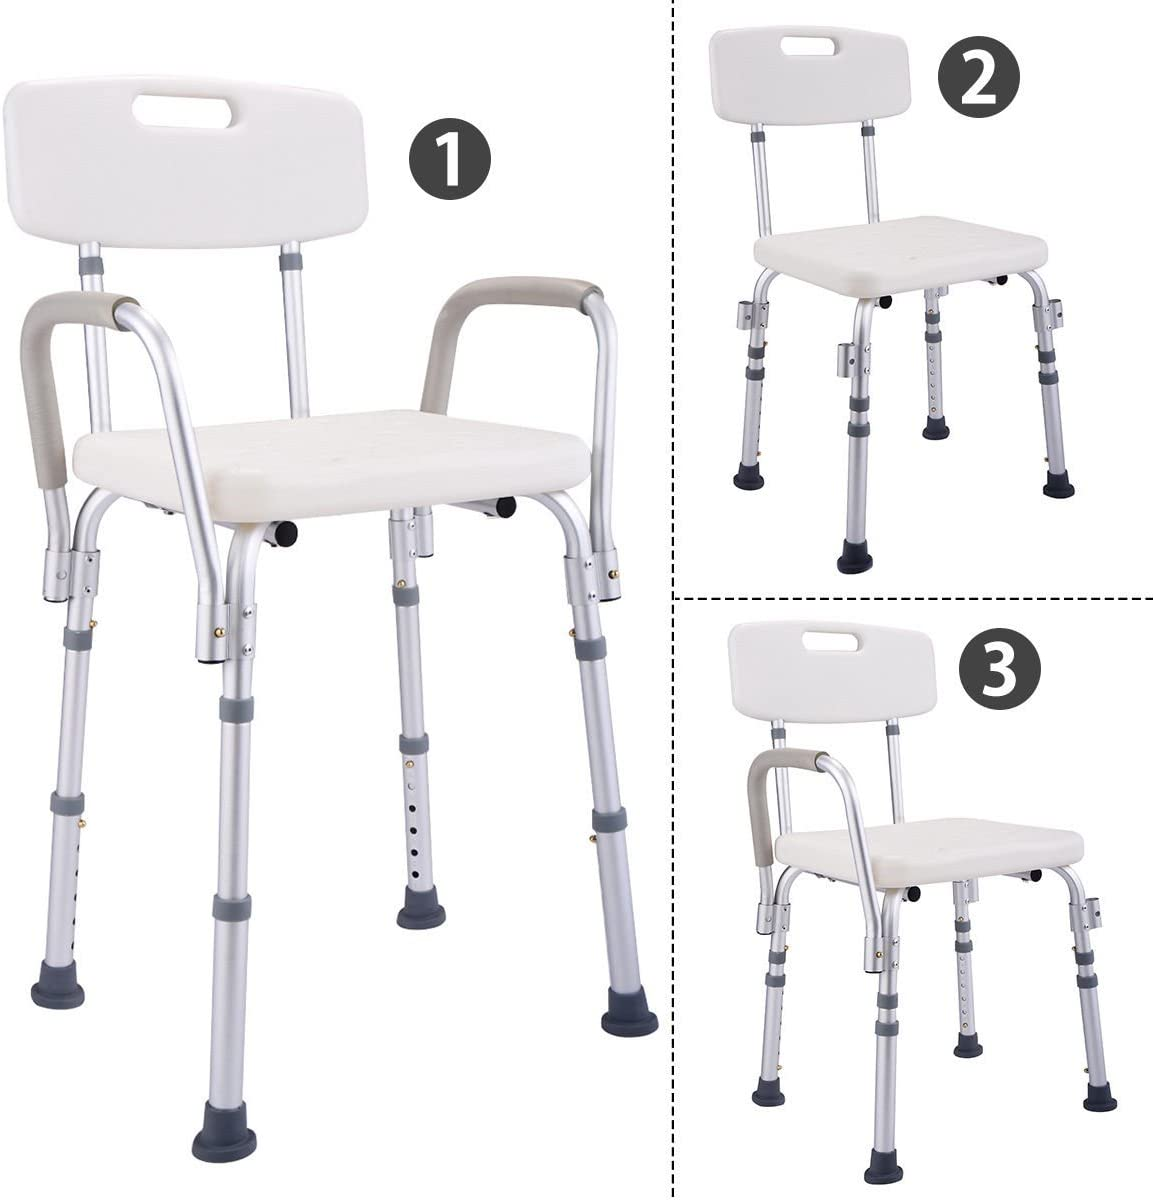 B074DC9QC9 6 Height Adjustable Medical Shower Chair Stool Bath Tub w/ Back & Armrest New 61yBnwVDvaL.SL1200_